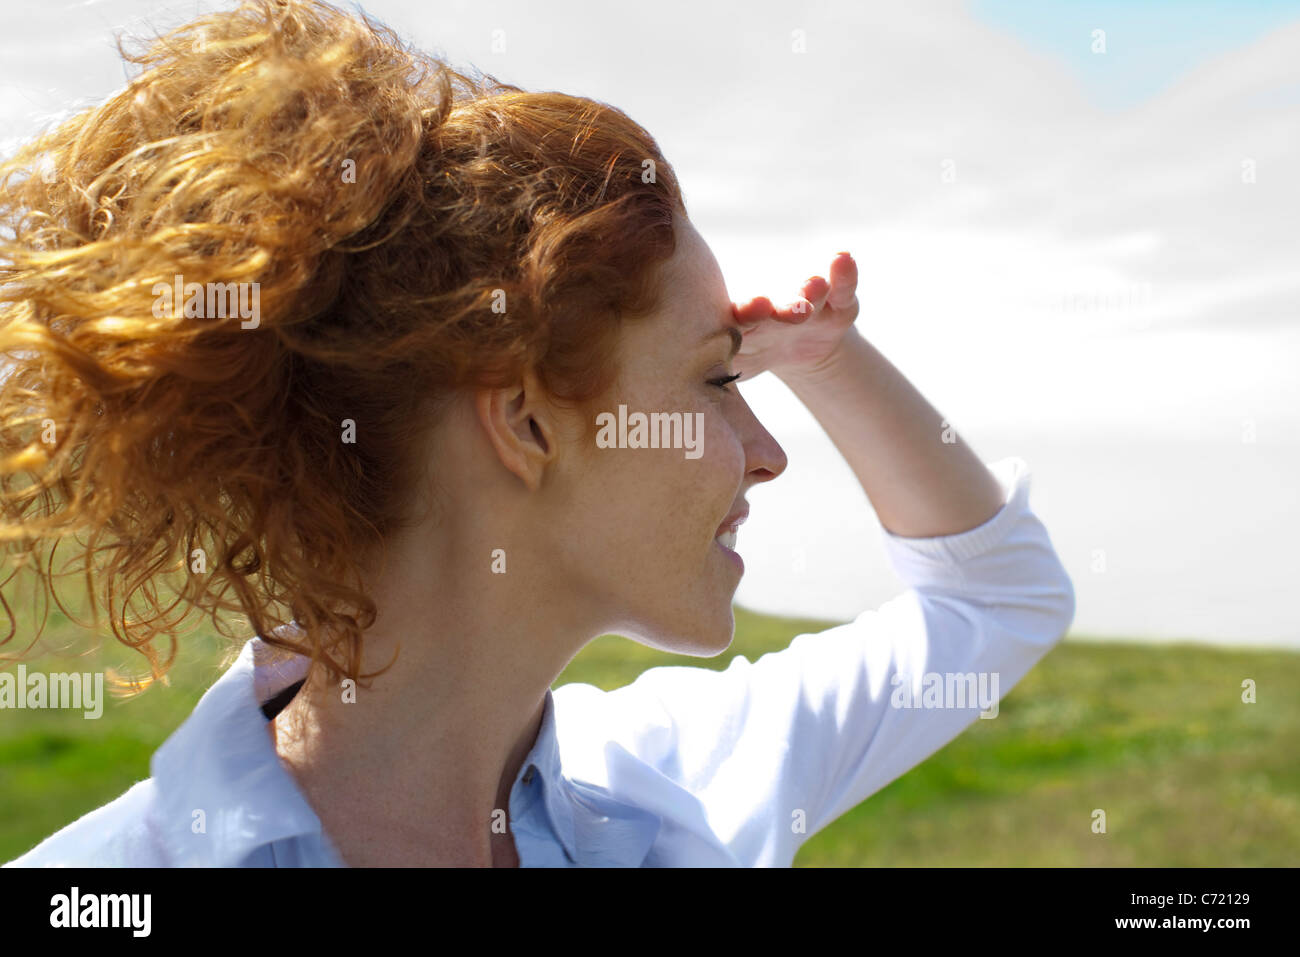 Young woman looking into distance, hand shading eyes - Stock Image